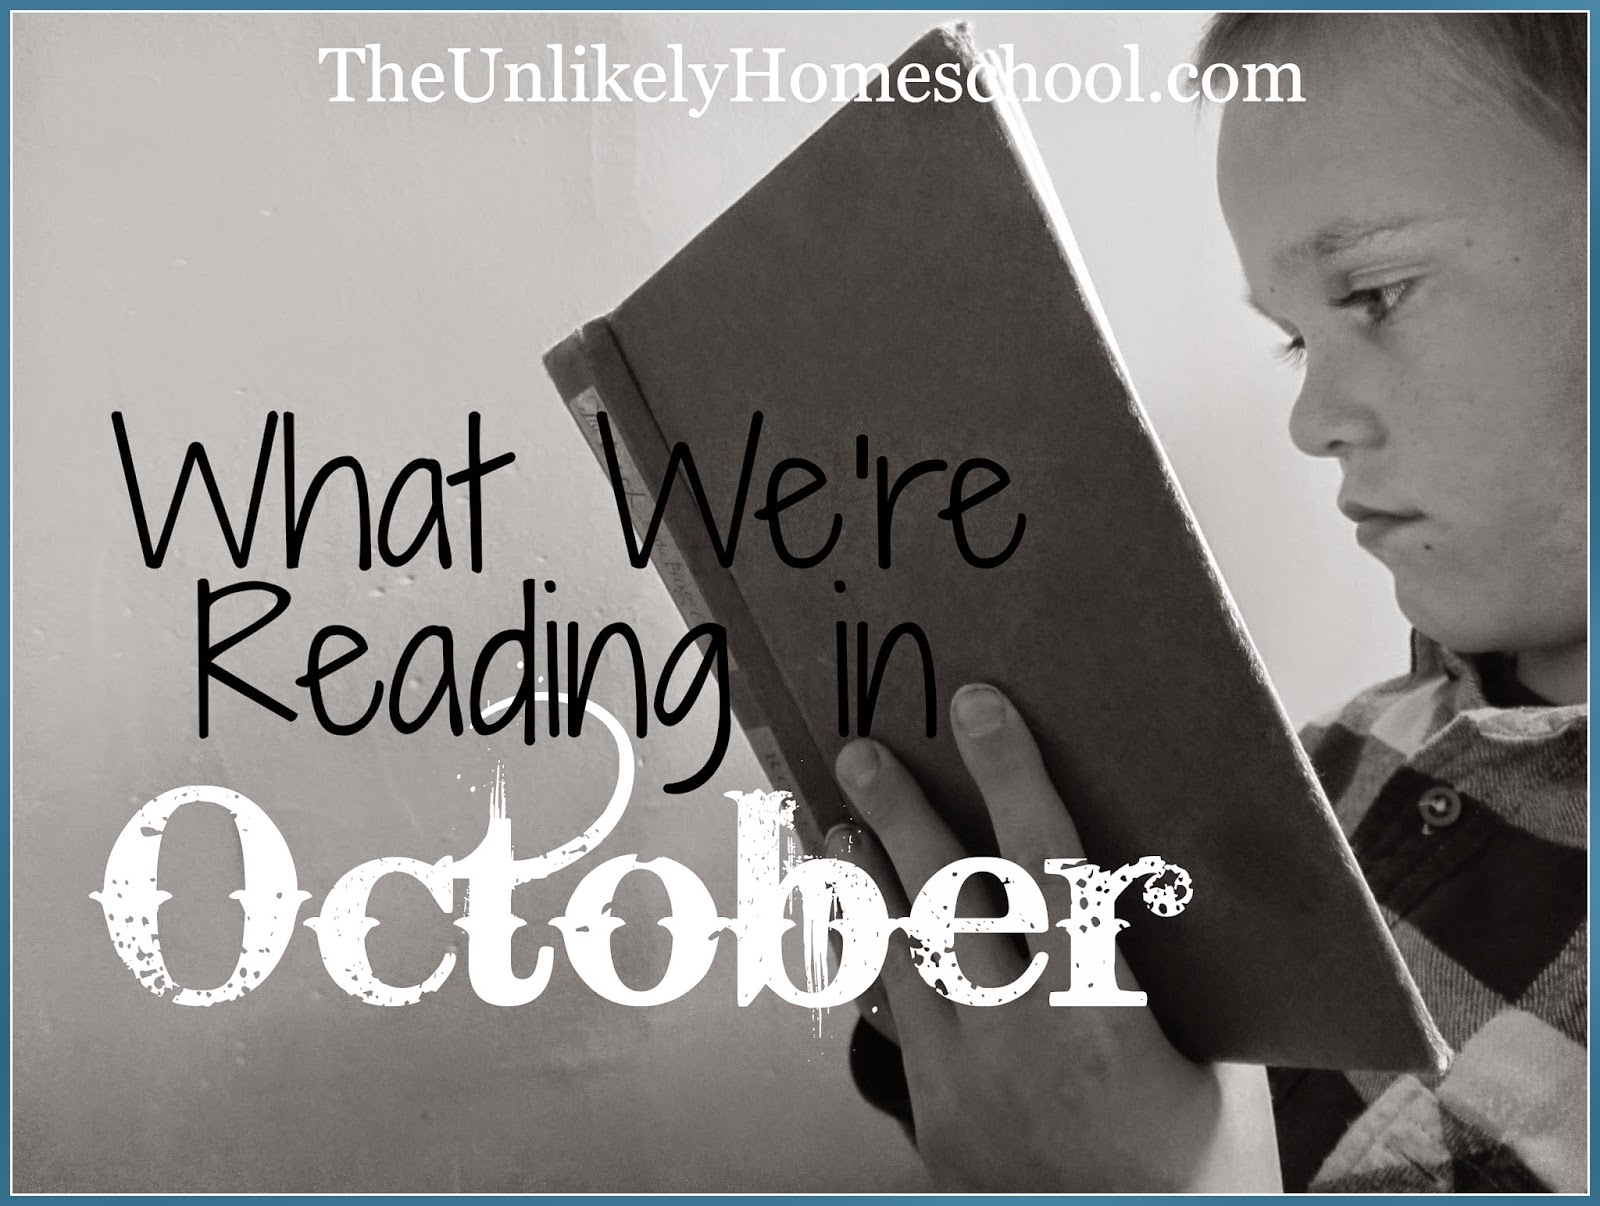 What We're Reading in October 2014 {The Unlikely Homeschool}